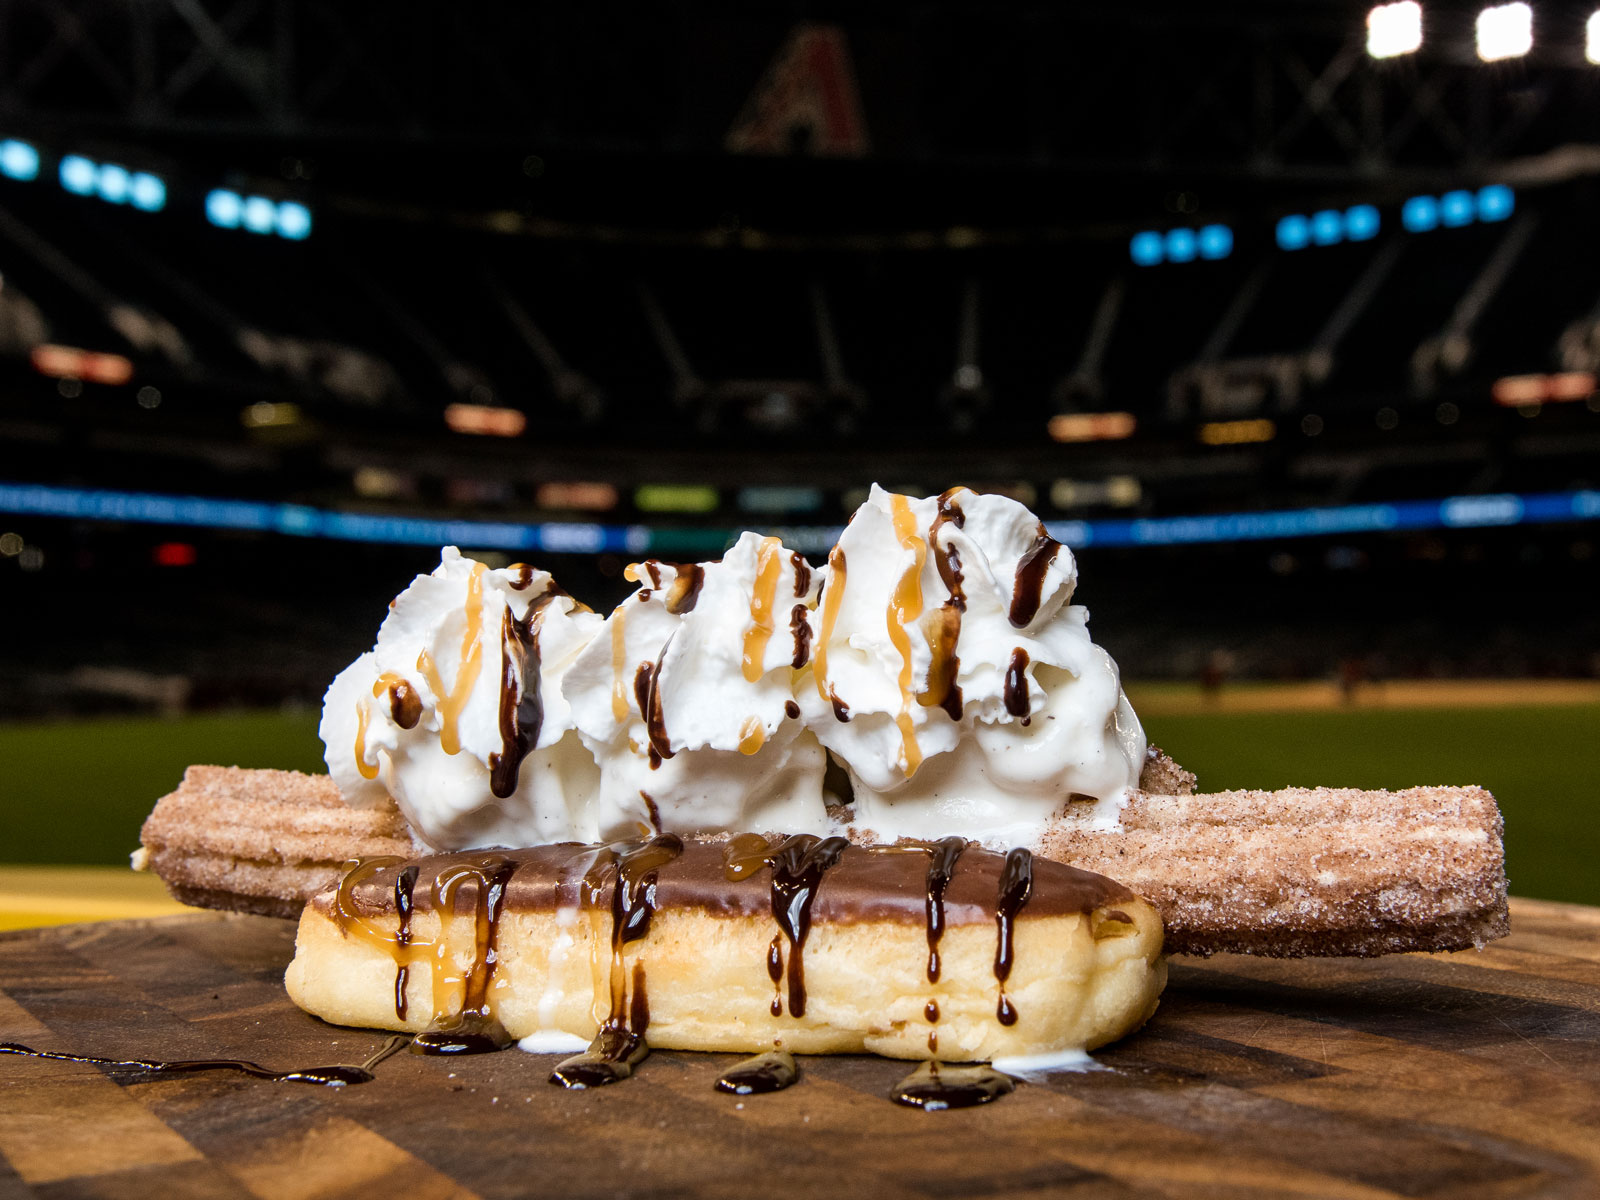 'MLB Food Fest' Lets You Try Items from All 30 Major League Baseball Teams